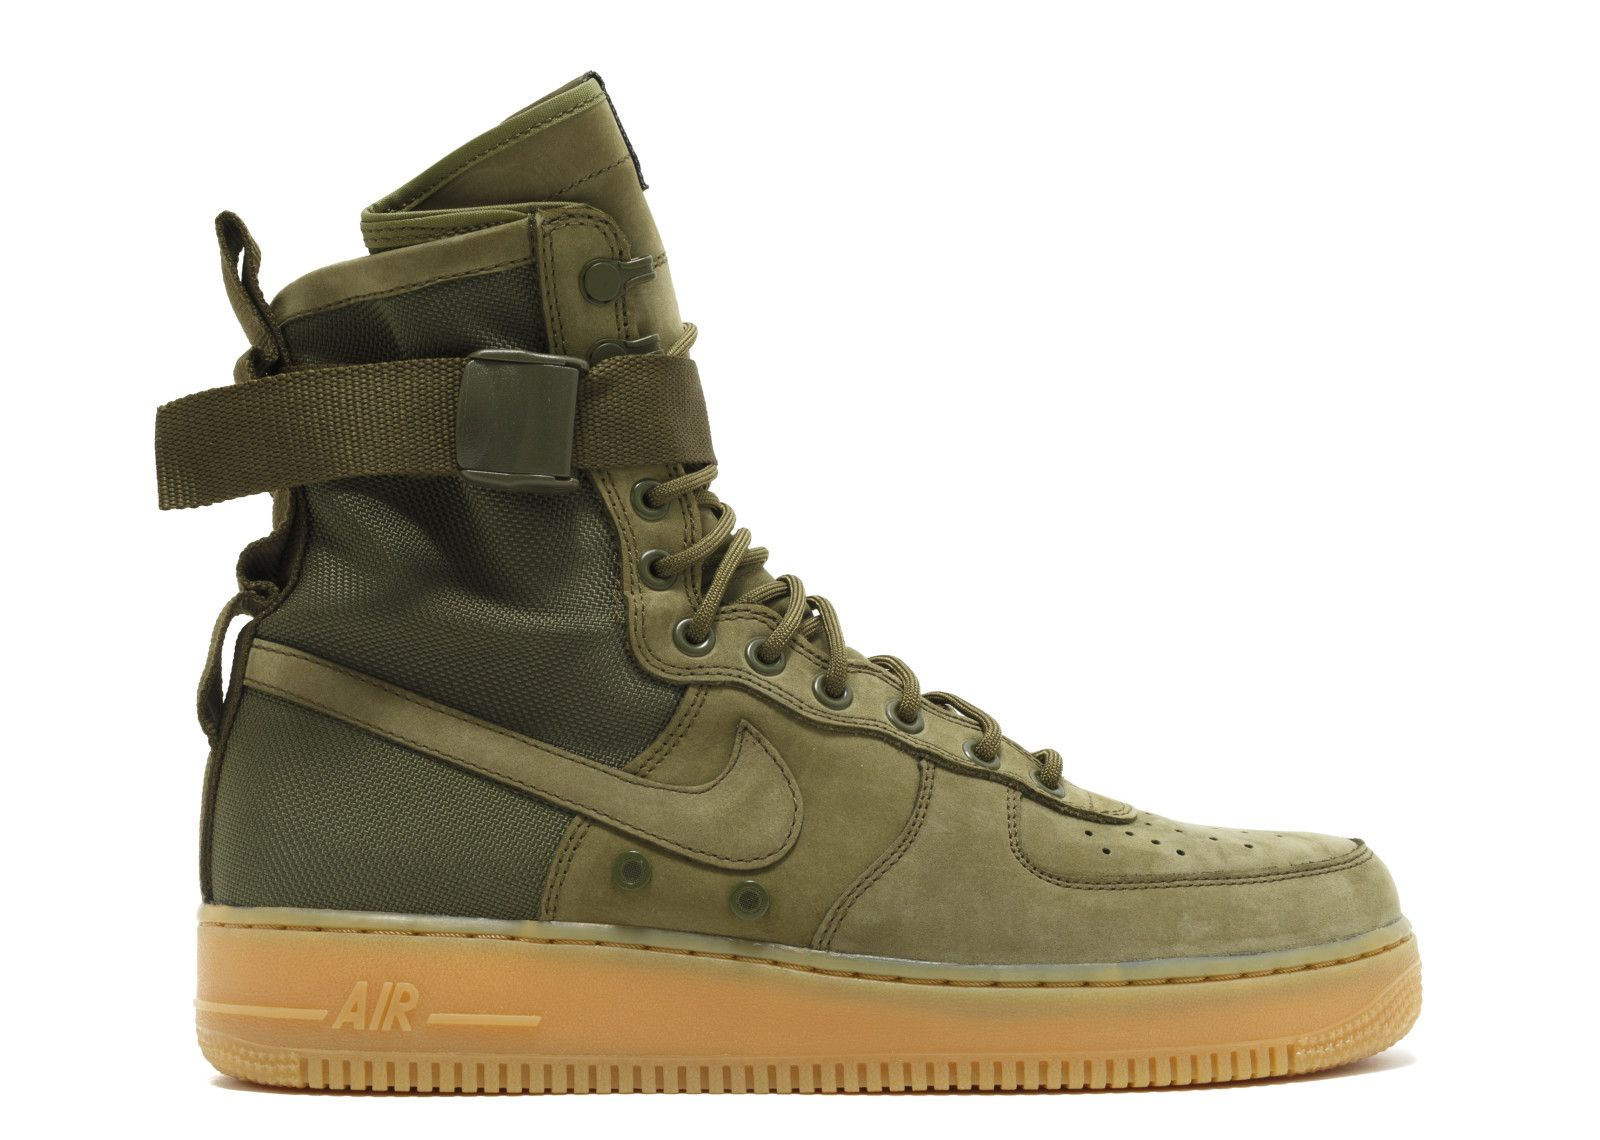 Nike Air Force 1 '07 Suede Medium Olive – Kith